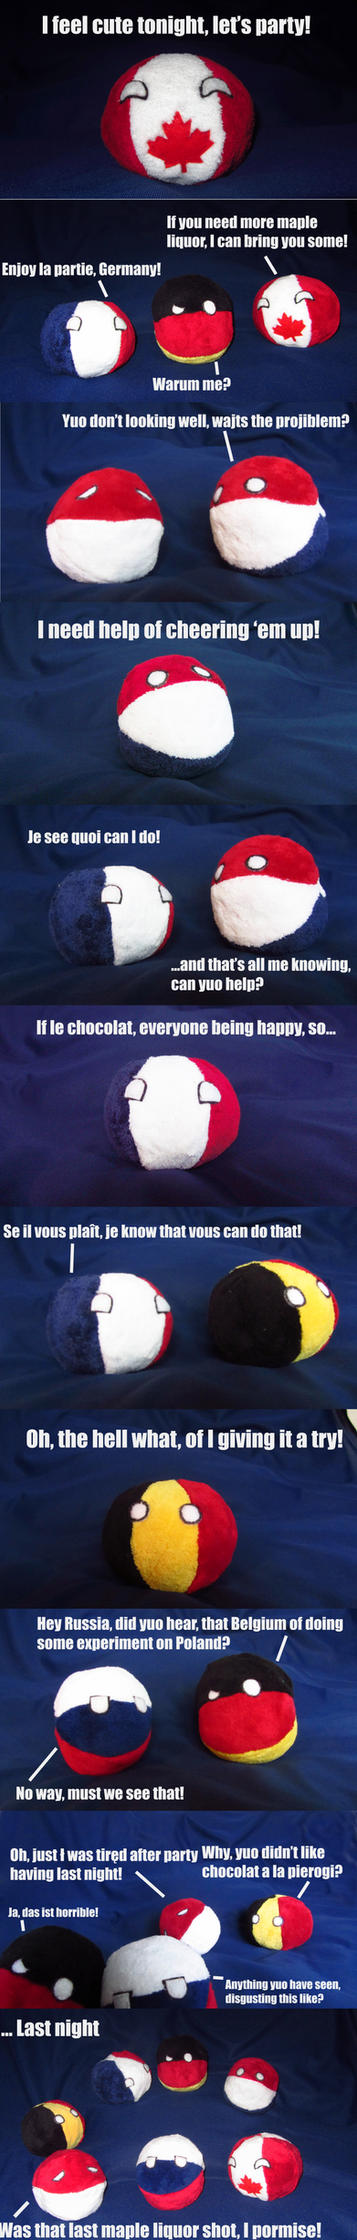 My Countryball plushies were having a party! by Spark-Strudel